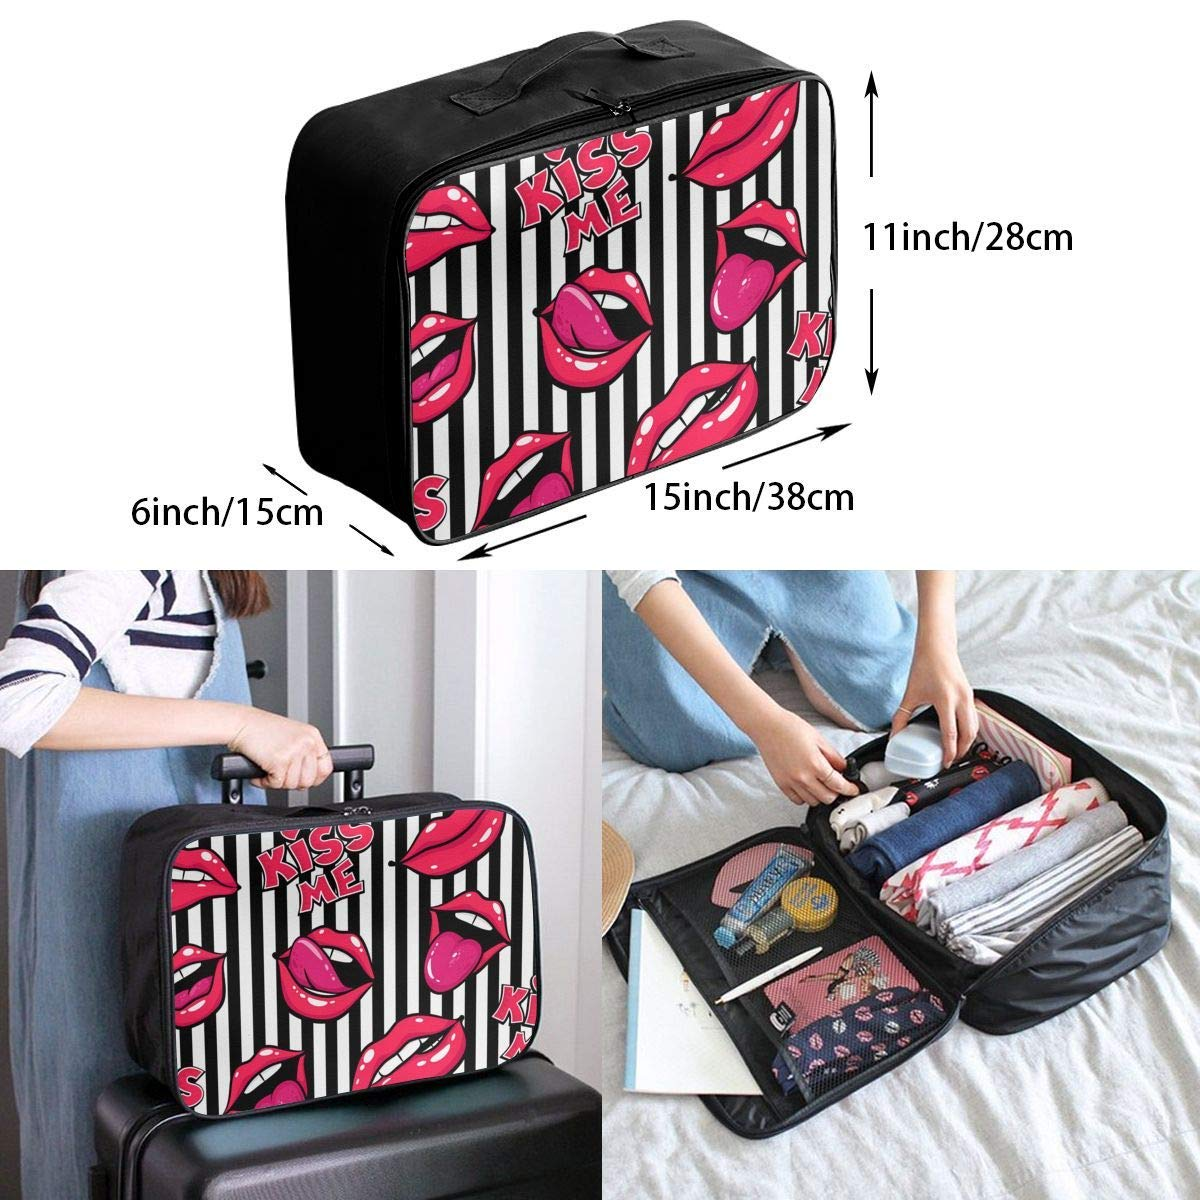 Hearts I Love You JTRVW Luggage Bags for Travel Travel Lightweight Waterproof Foldable Storage Carry Luggage Duffle Tote Bag